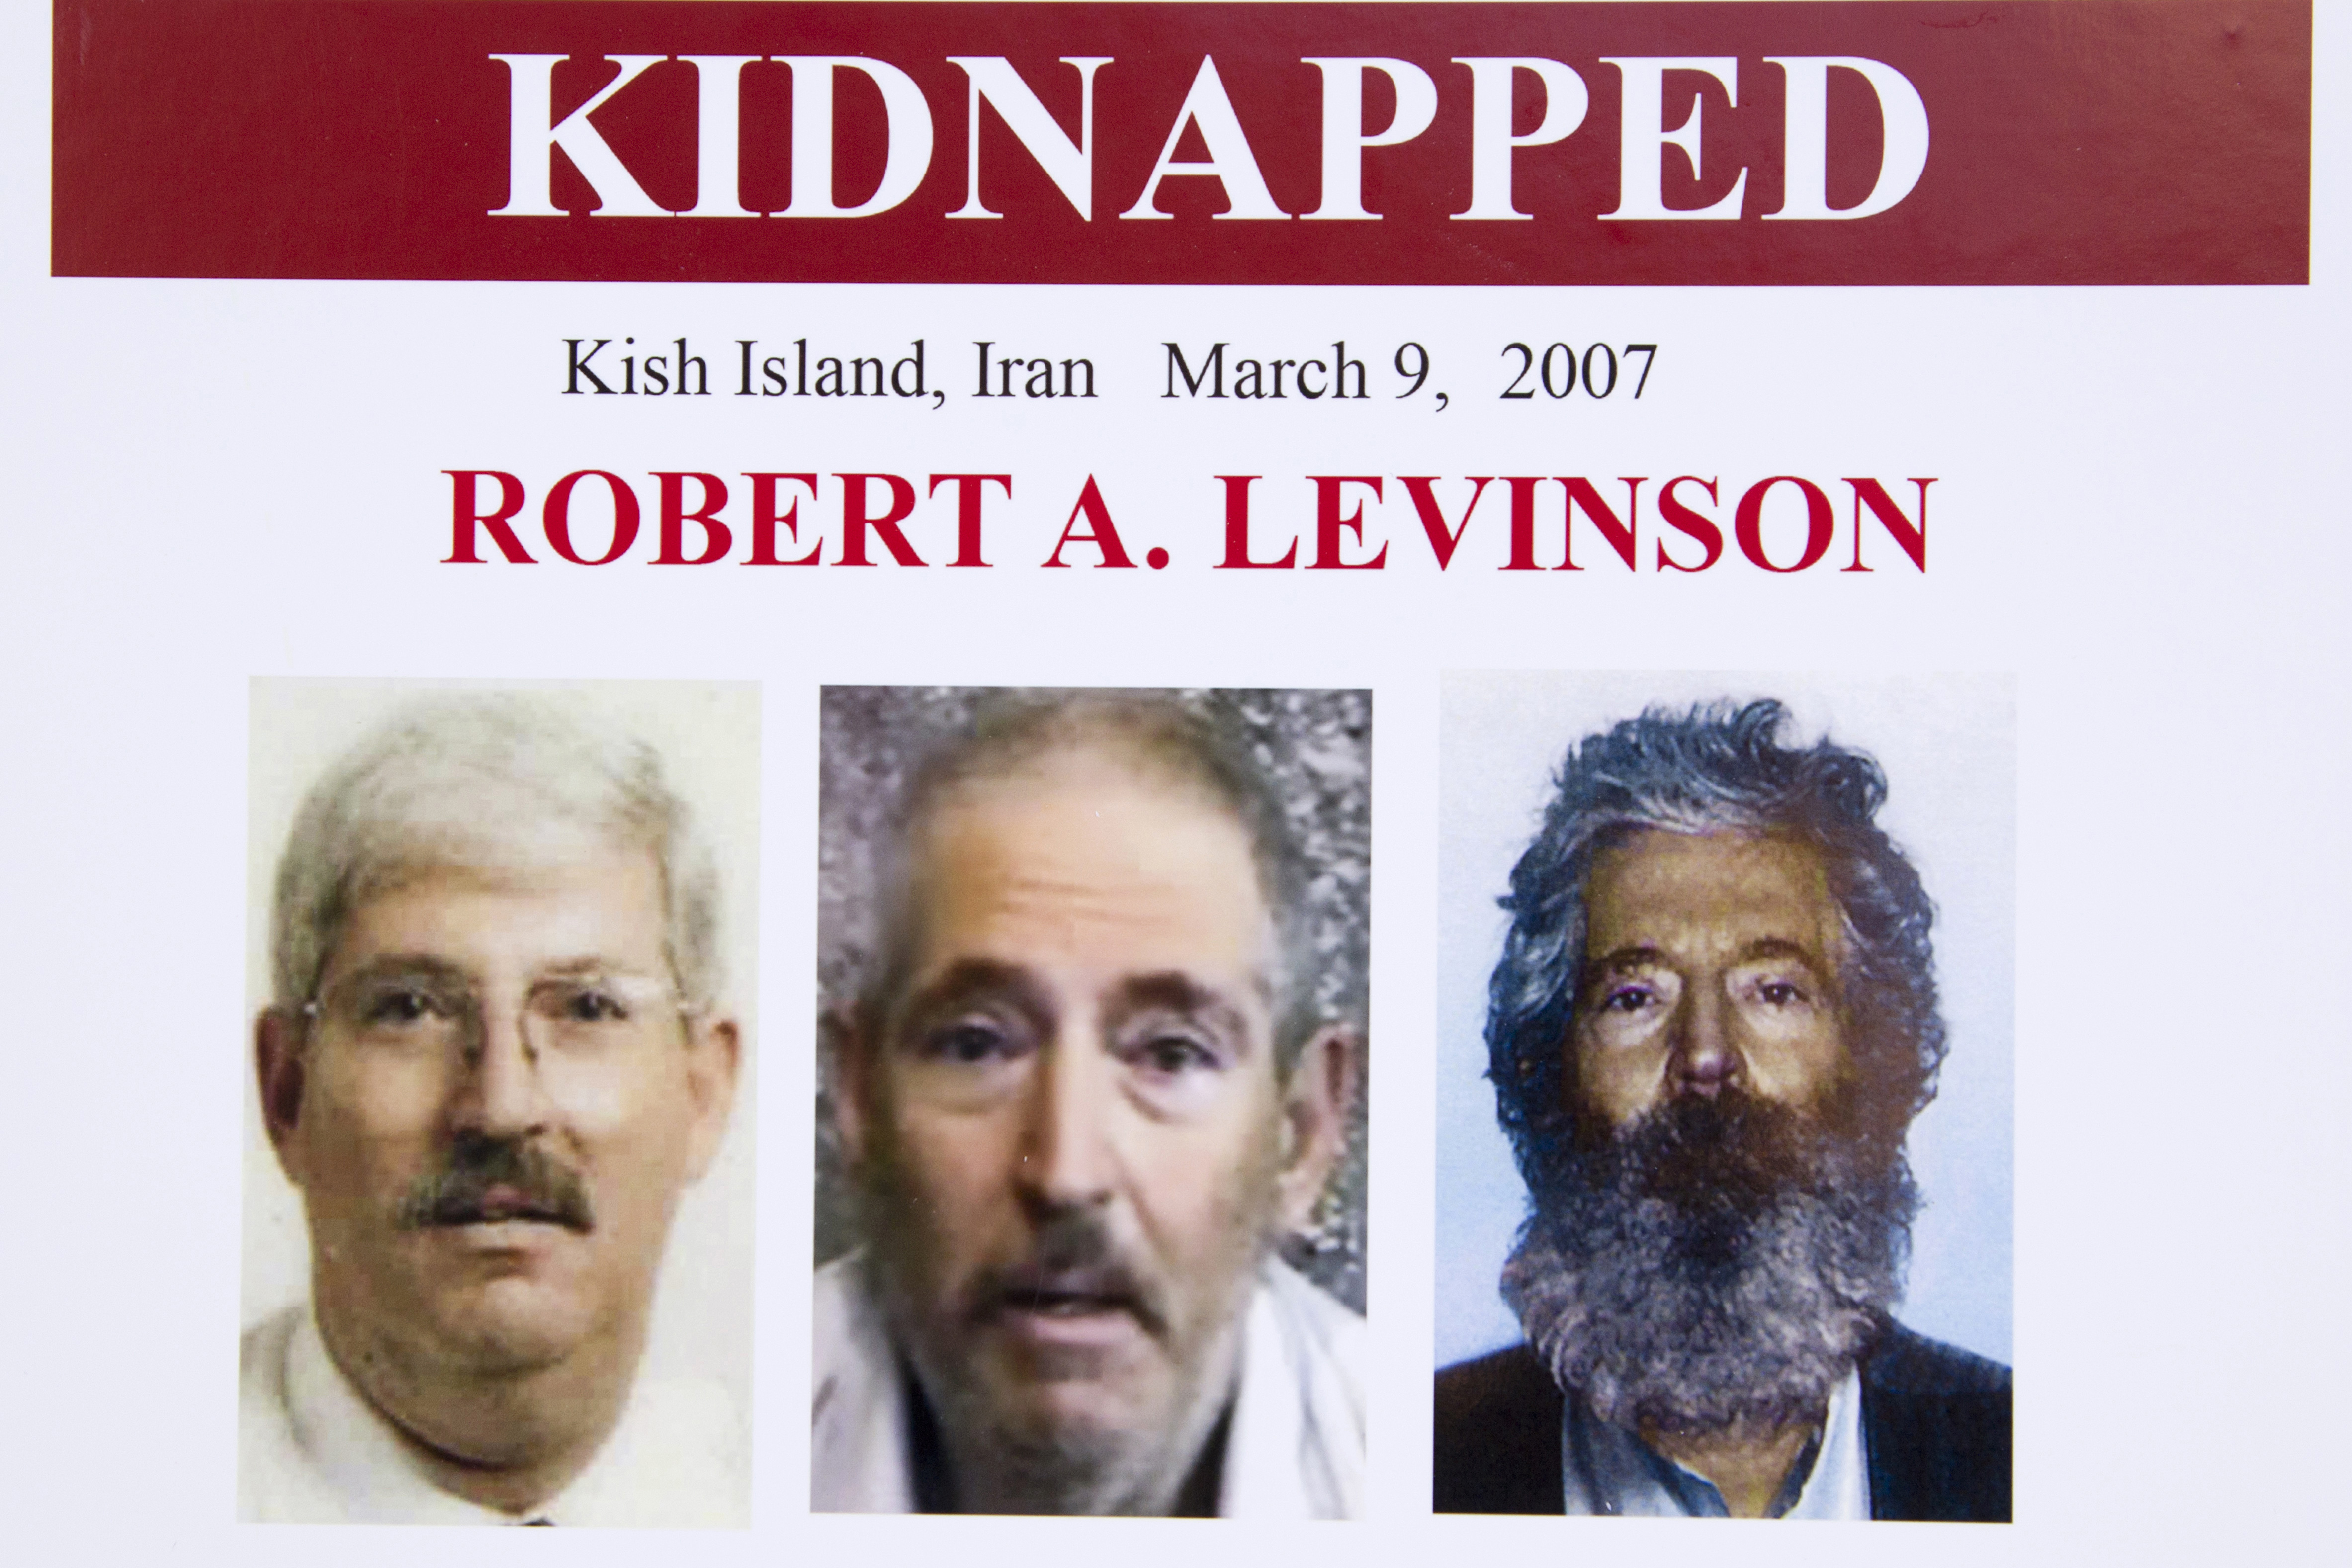 In this March 6, 2012, file photo, an FBI poster showing a composite image of former FBI agent Robert Levinson, right, of how he would look like now after five years in captivity, and an image, center, taken from the video, released by his kidnappers, and a picture before he was kidnapped, left, displayed during a news conference in Washington. A federal judge has held Iran responsible for the kidnapping of former FBI agent Robert Levinson. U.S. District Judge Timothy Kelly entered a default judgement against the regime on the 13th anniversary on his disappearance.